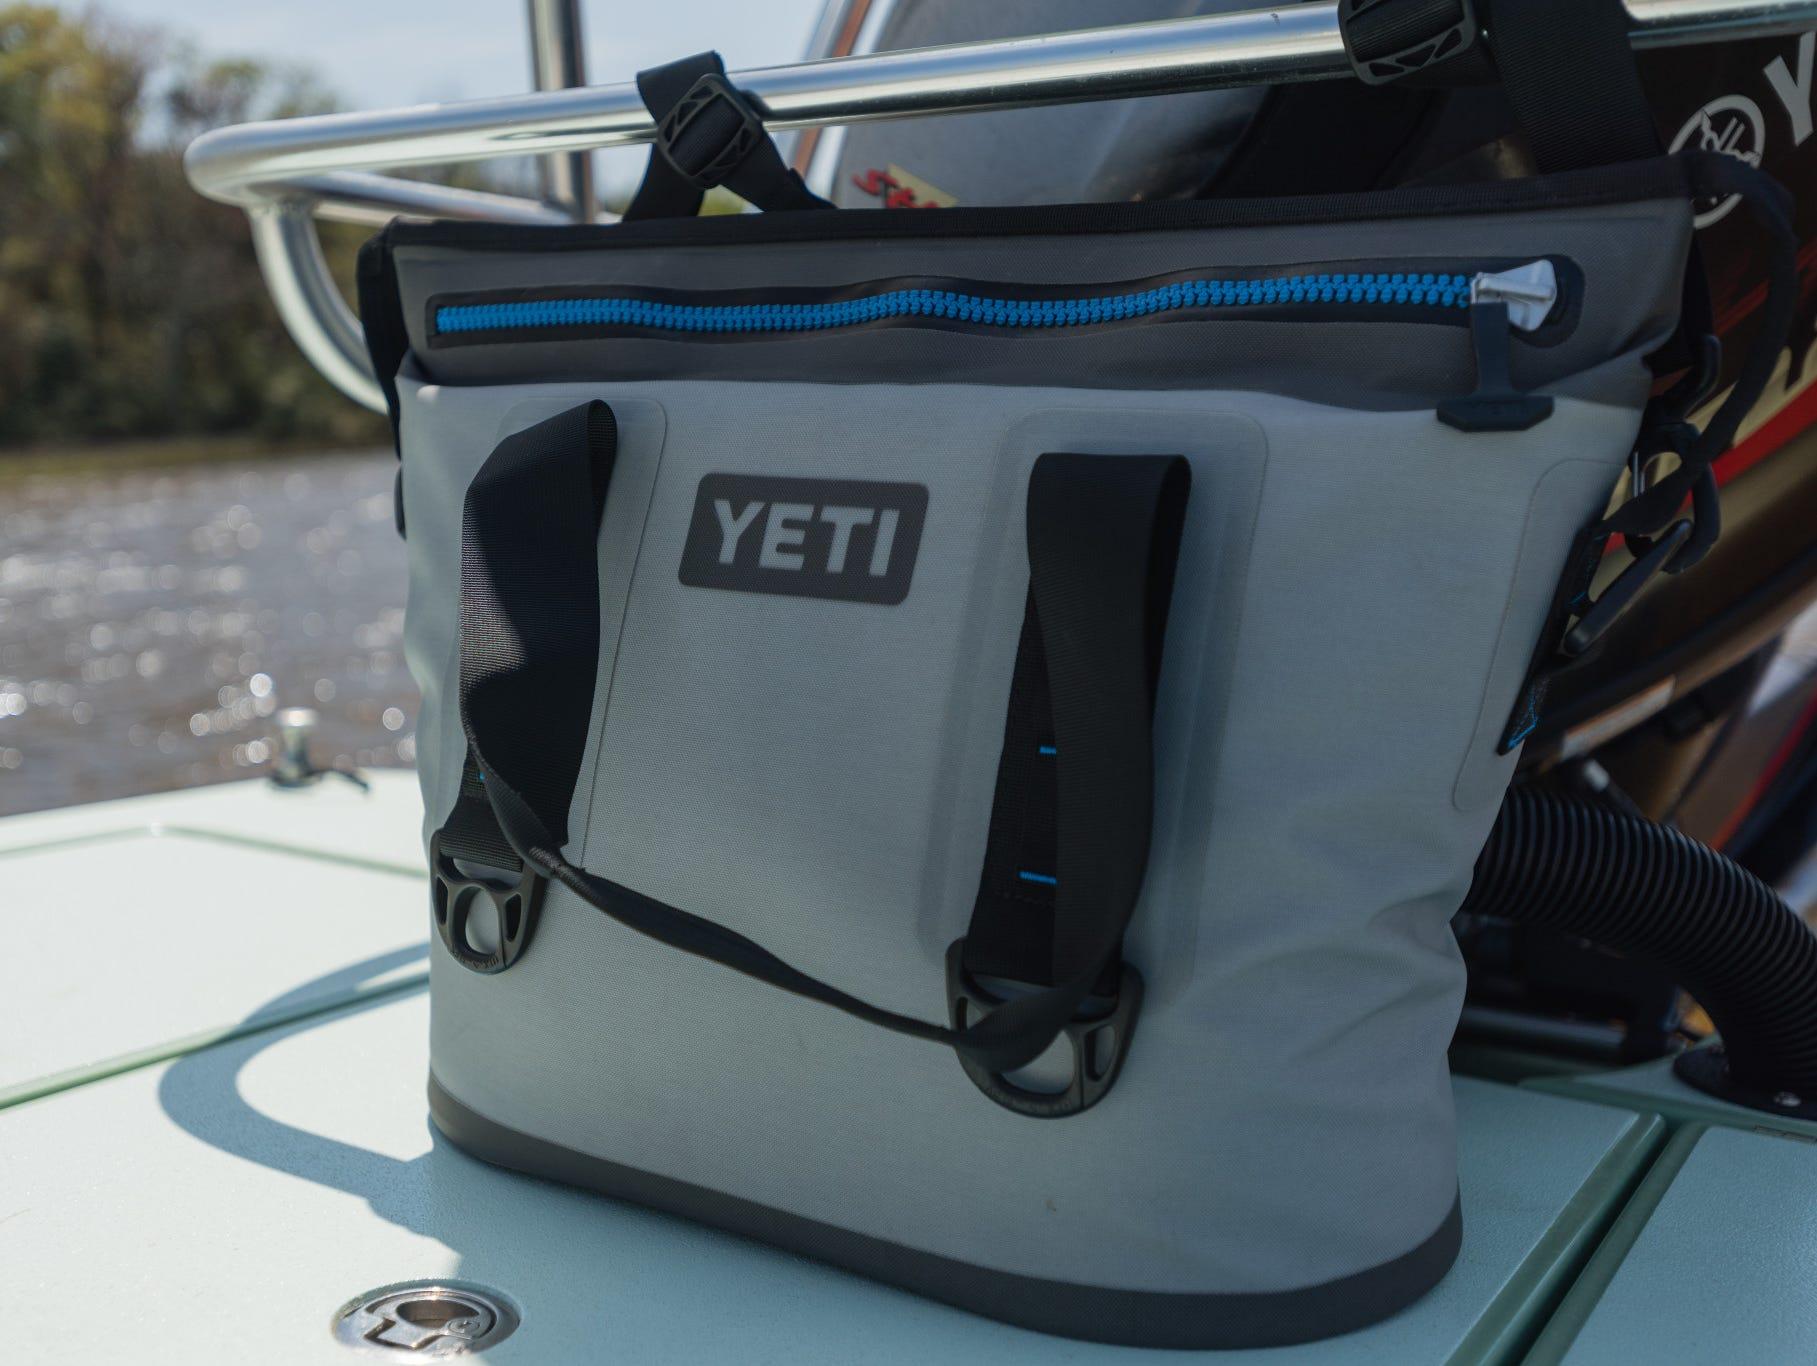 We're heating things up with sizzling hot giveaways for hitting the open road! THIS WEEK: YETI Cooler